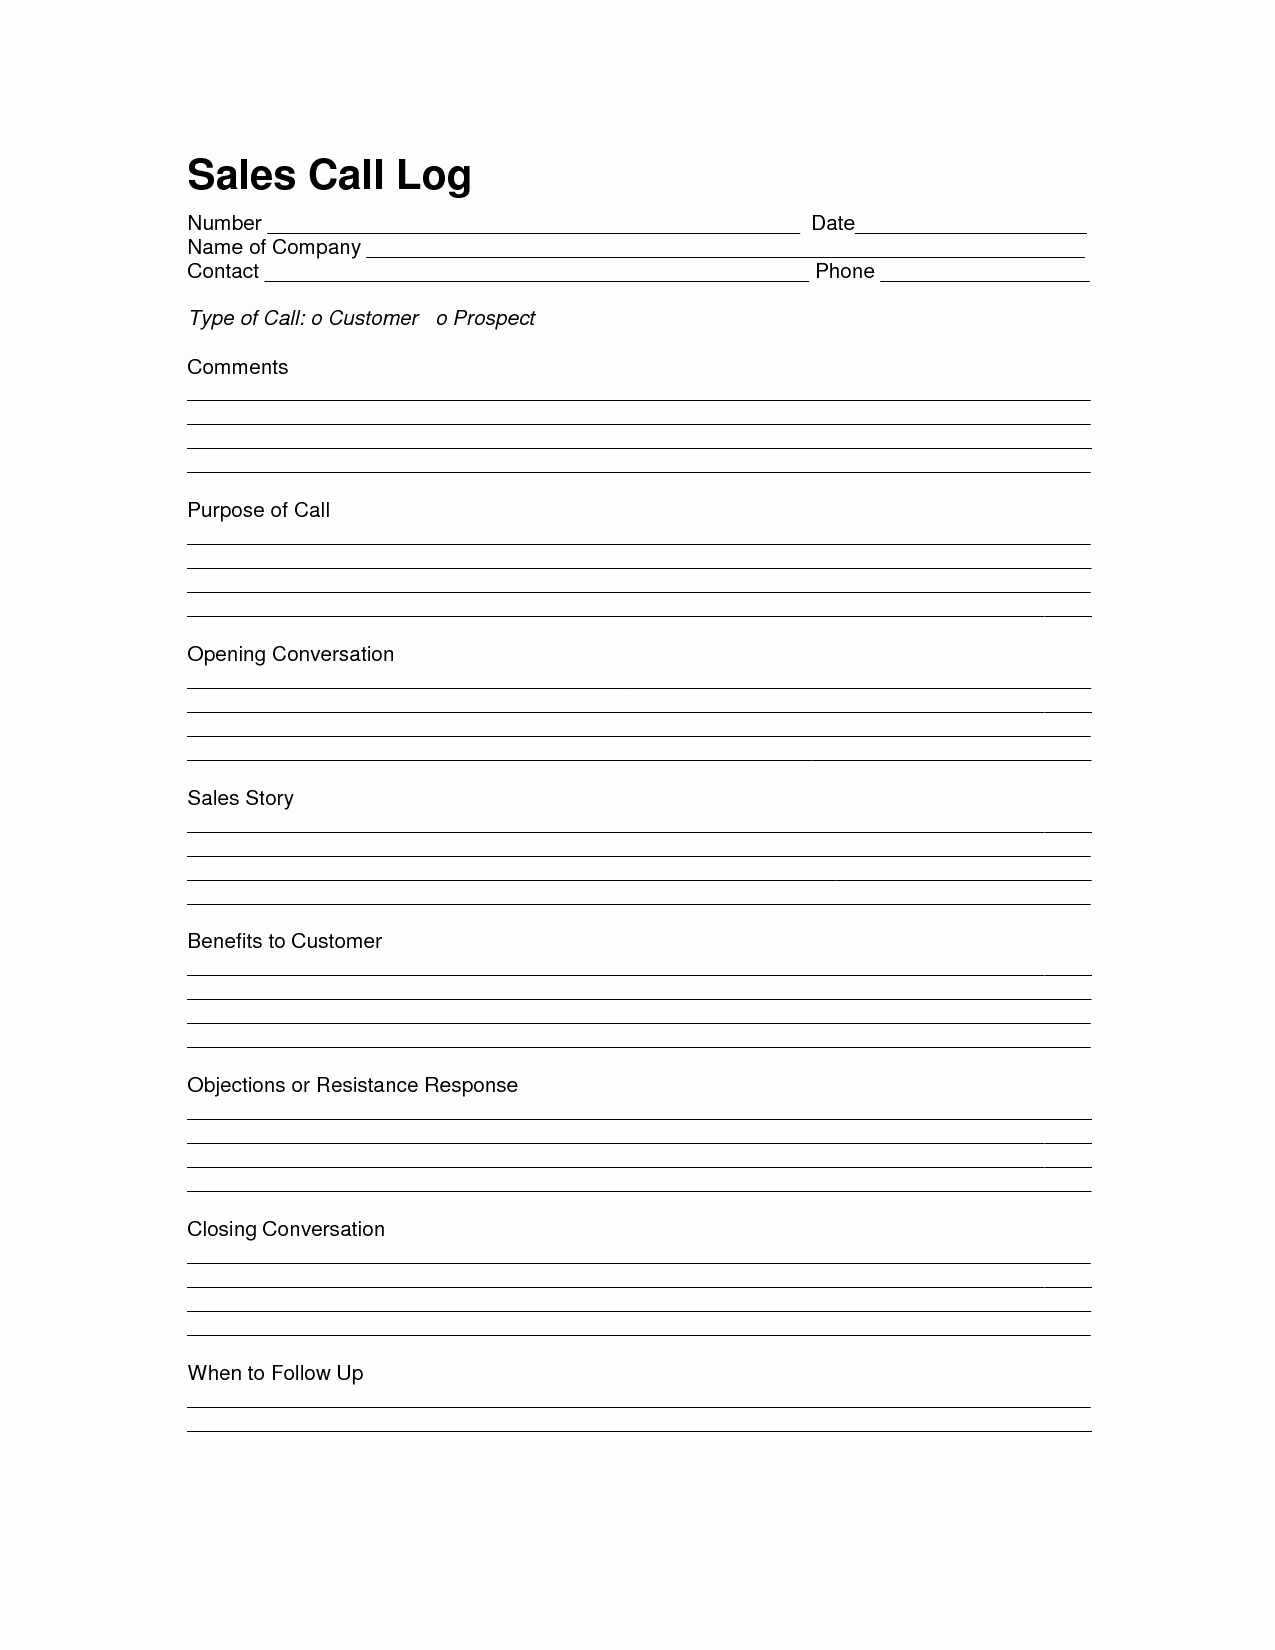 Sales Calls Report Template Luxury Sales Log Sheet Template Sales Call Log Template